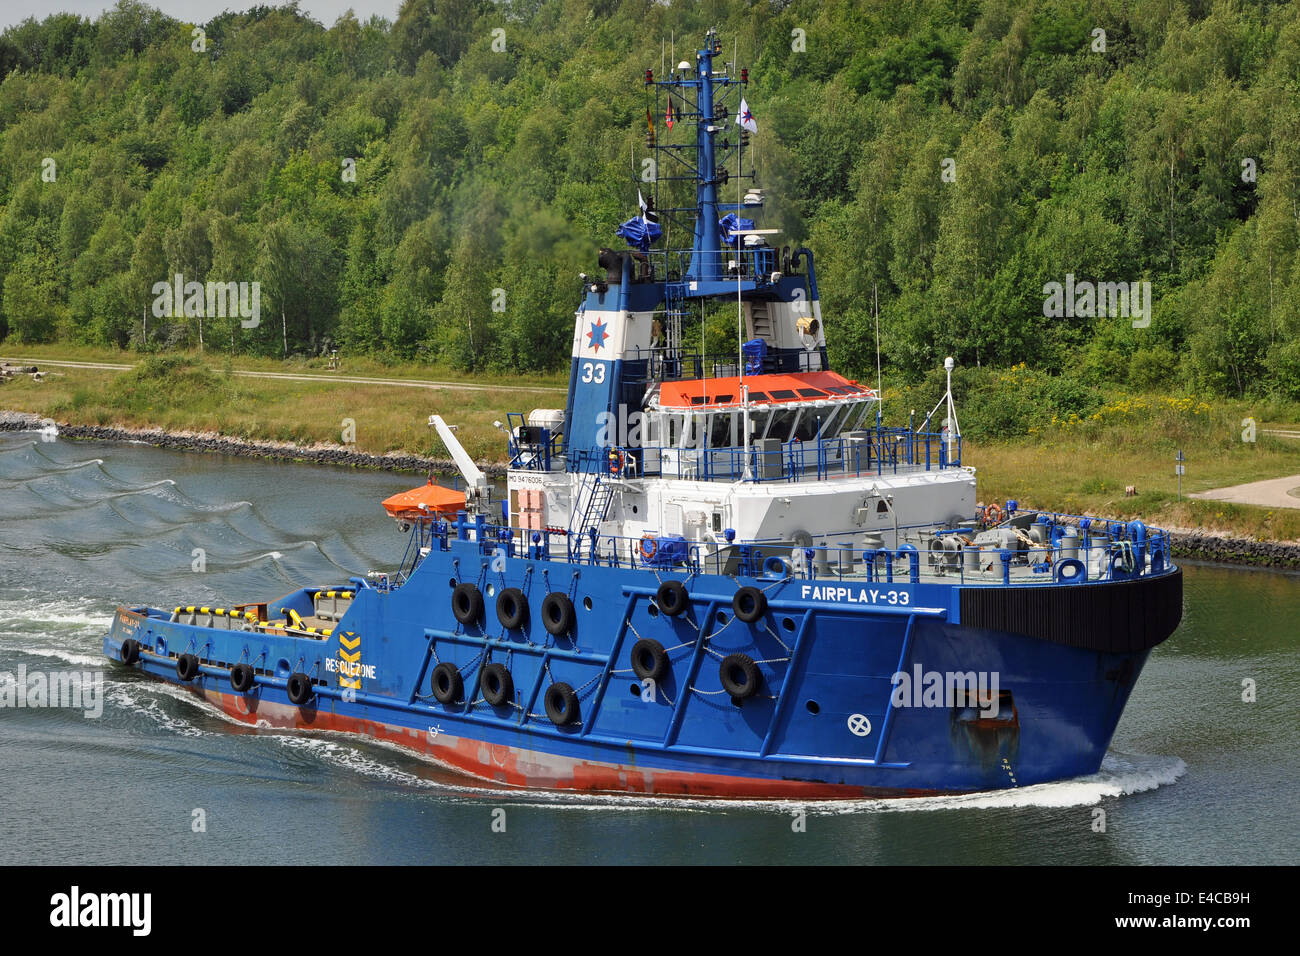 Offshore tug Fairplay-33 passing the Kiel-Canal. - Stock Image